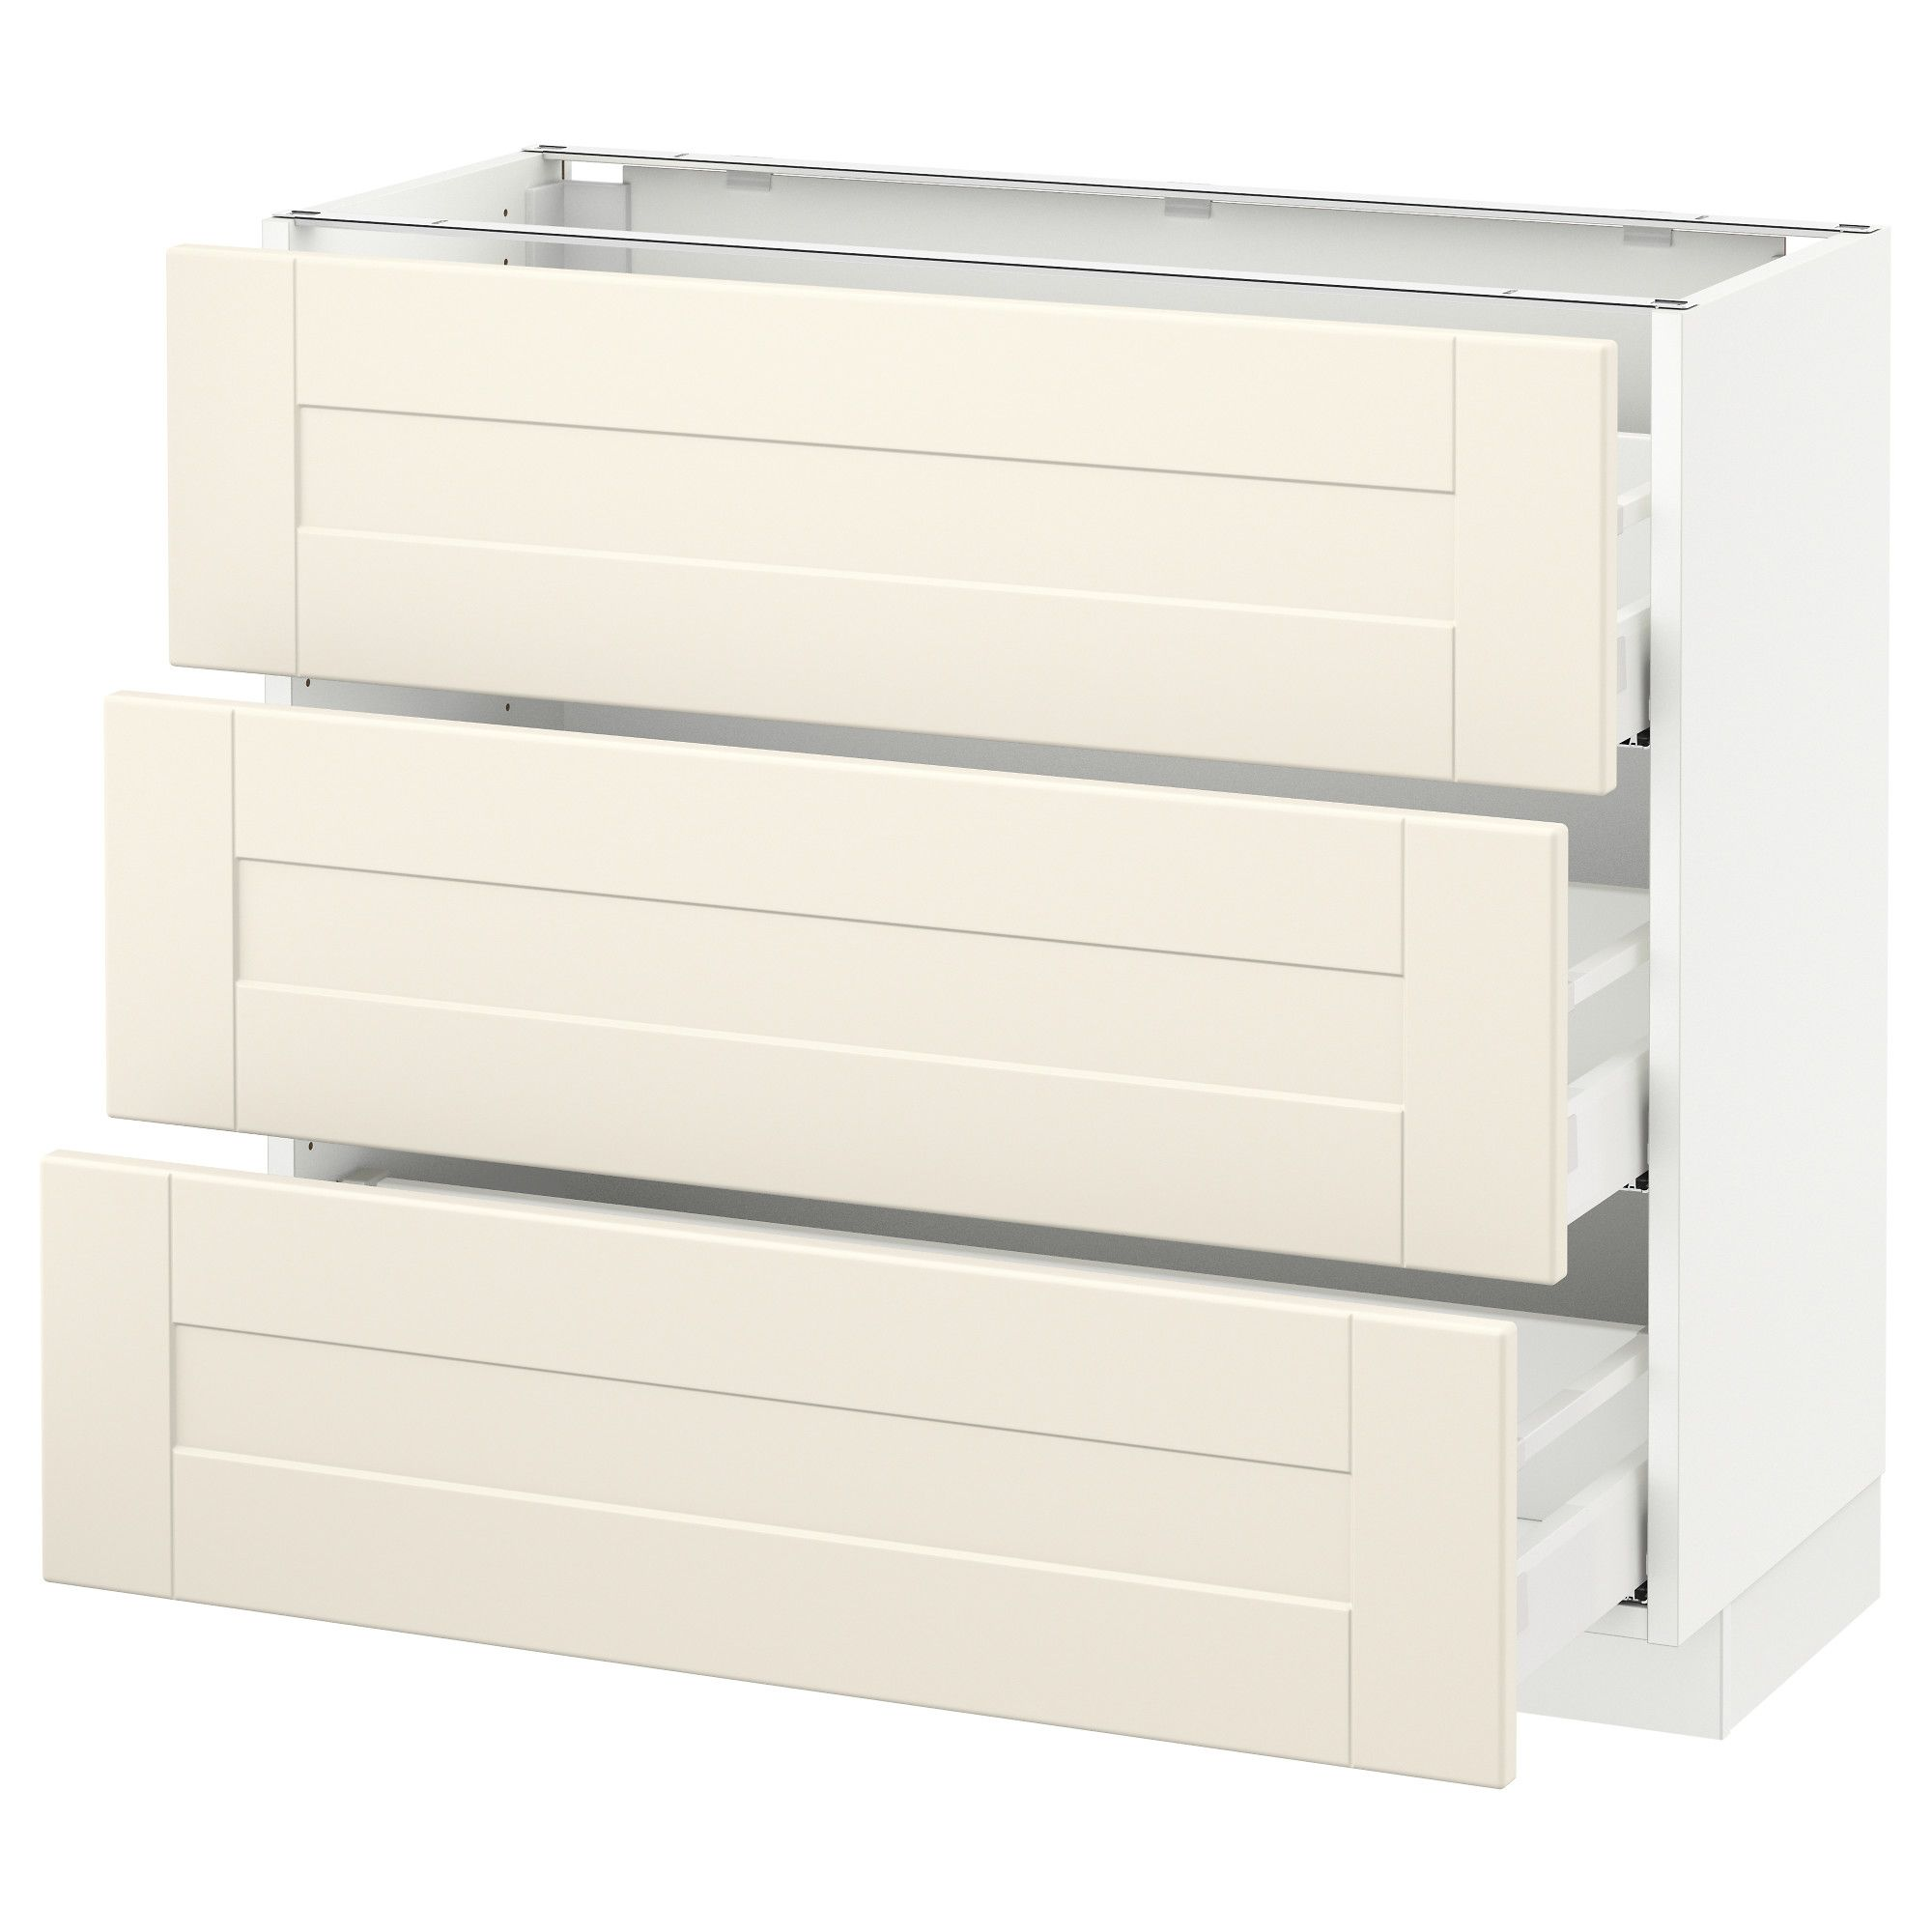 Ikea Kitchen Cabinets Quality: SEKTION White Base Cabinet With 3 Drawers Frame